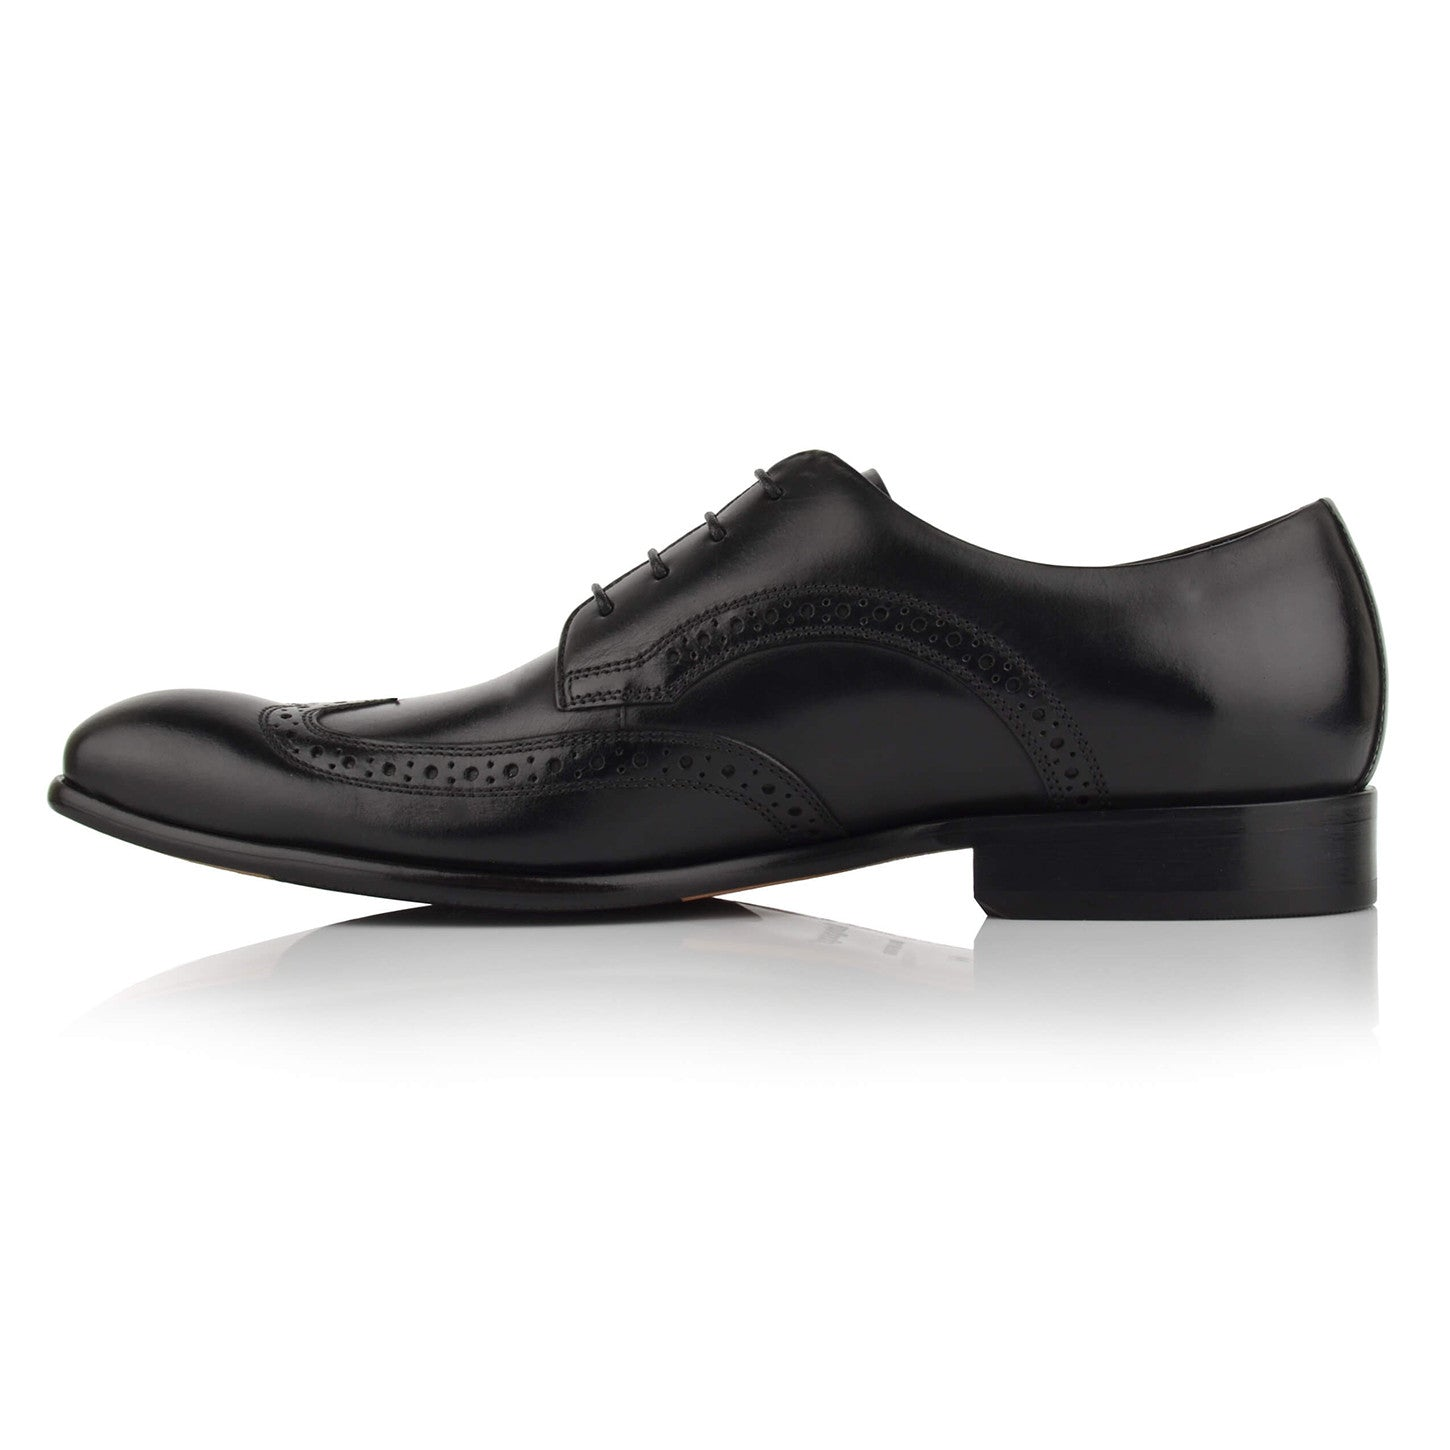 LM411 - Language Cosmo Men's Formal Black Derby Shoes